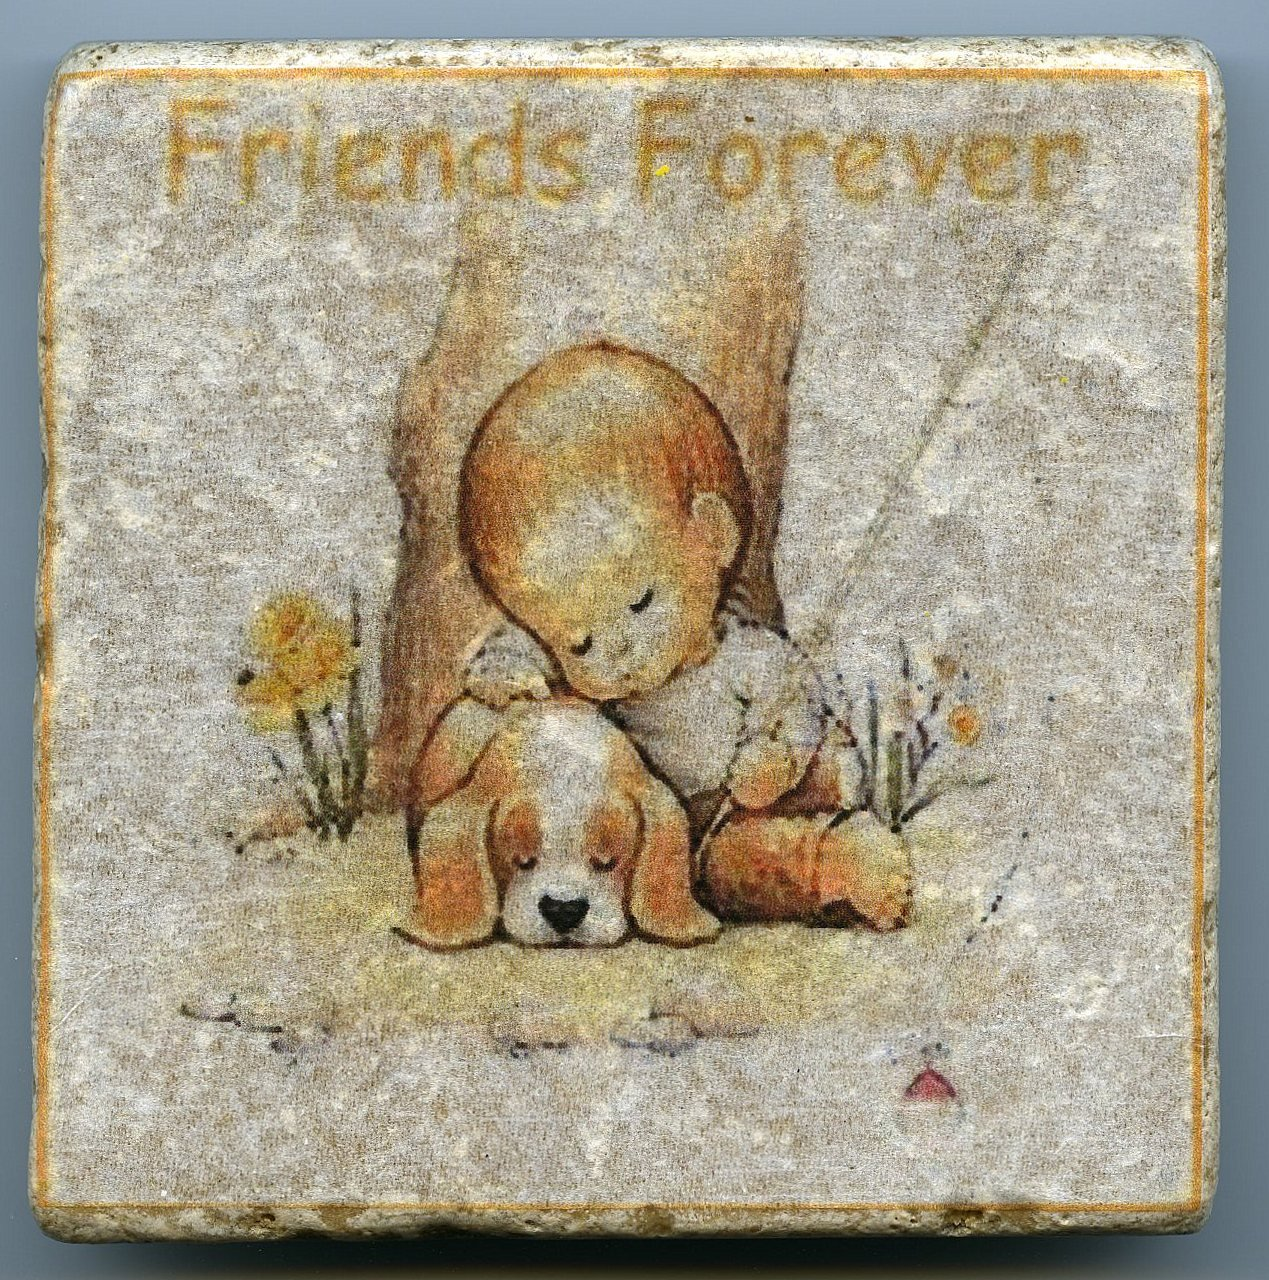 Friends forever little boy and dog fishing napping tumbled natural stone tile - Forever tile and stone ...